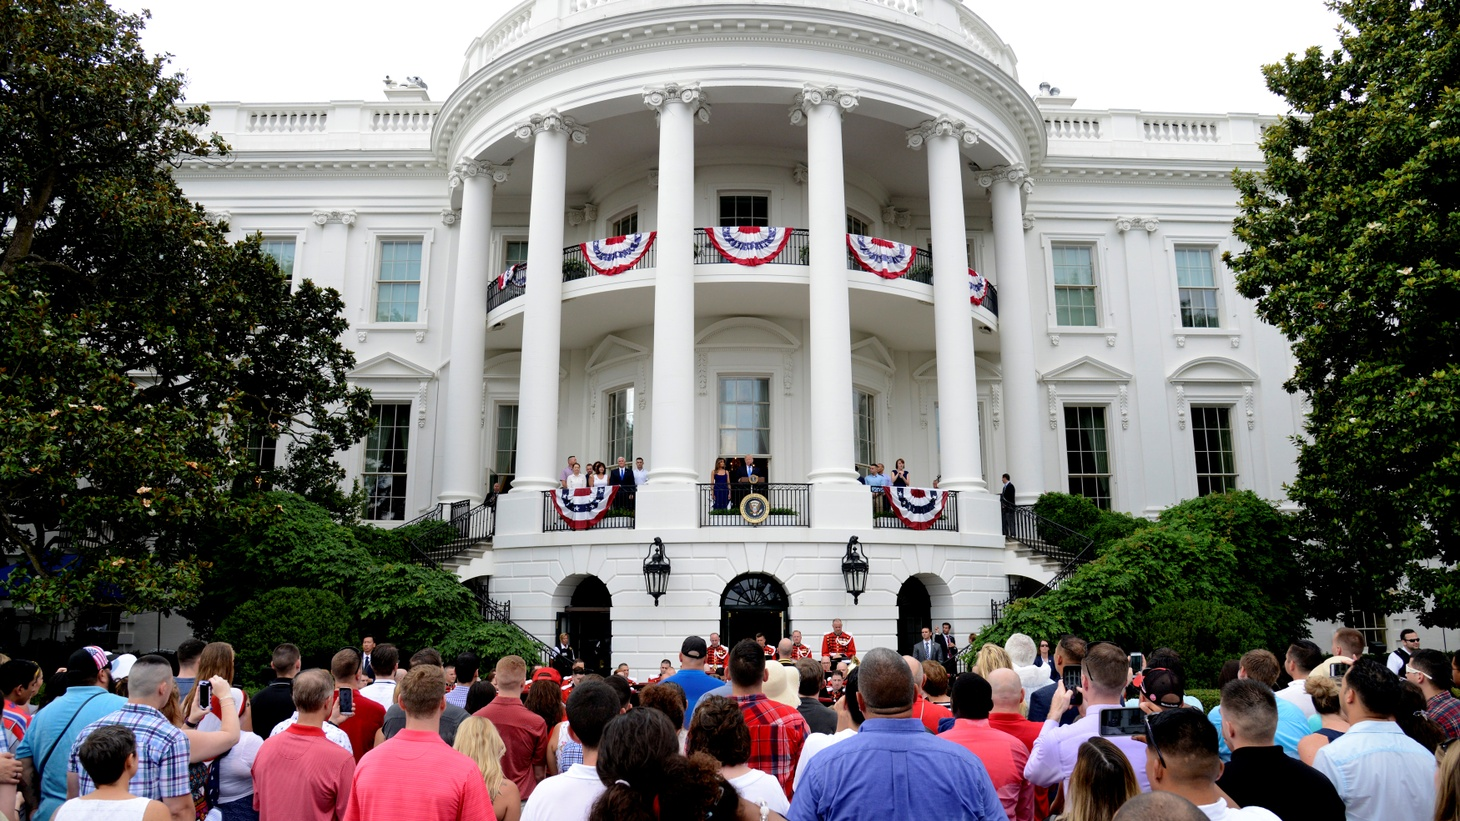 President Donald Trump and First Lady Melania Trump (C), along with Vice President Mike Pence and his wife Karen, stand at Truman Balcony as they welcome military families who have gathered for a Fourth of July picnic on the South Lawn of the White House, prior to a fireworks display, in Washington, U.S. July 4, 2017.